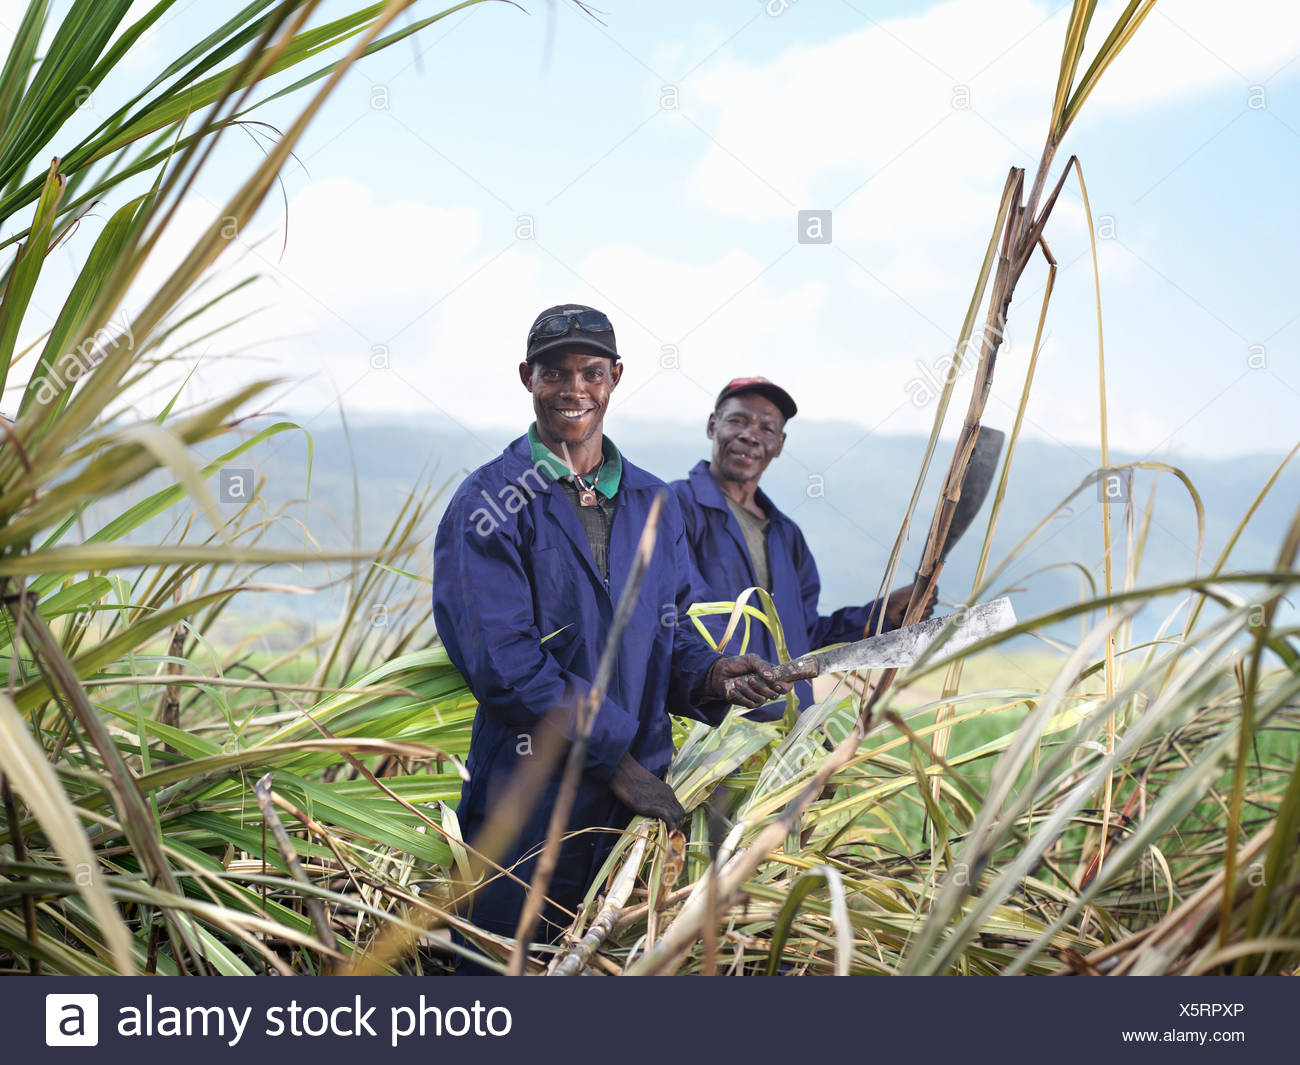 Workers Harvesting Sugar Cane - Stock Image